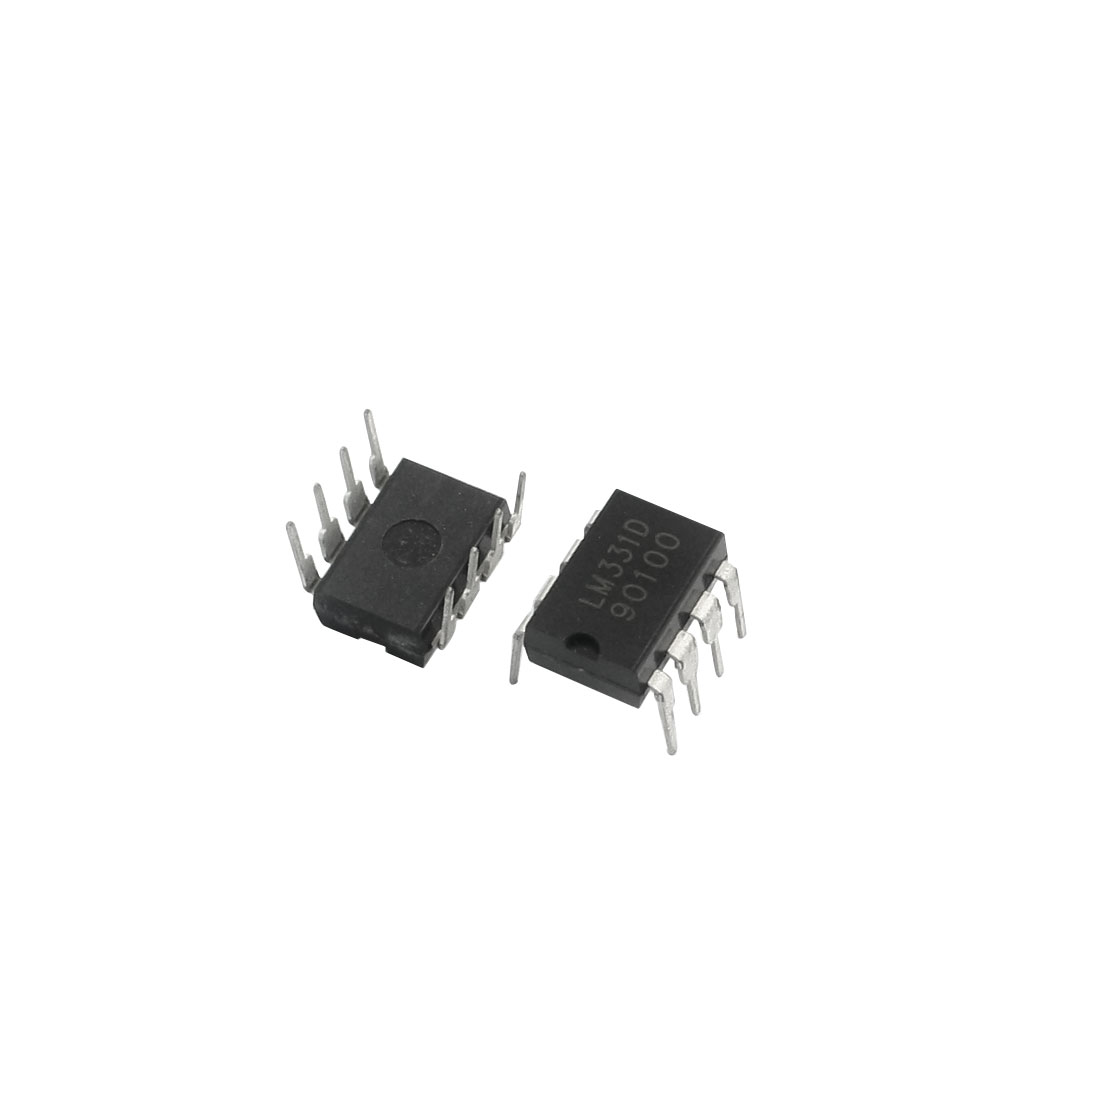 LM331 DIP-8 Through Hole Mount Precision Voltage to Frequency Converter IC Chip 2Pcs